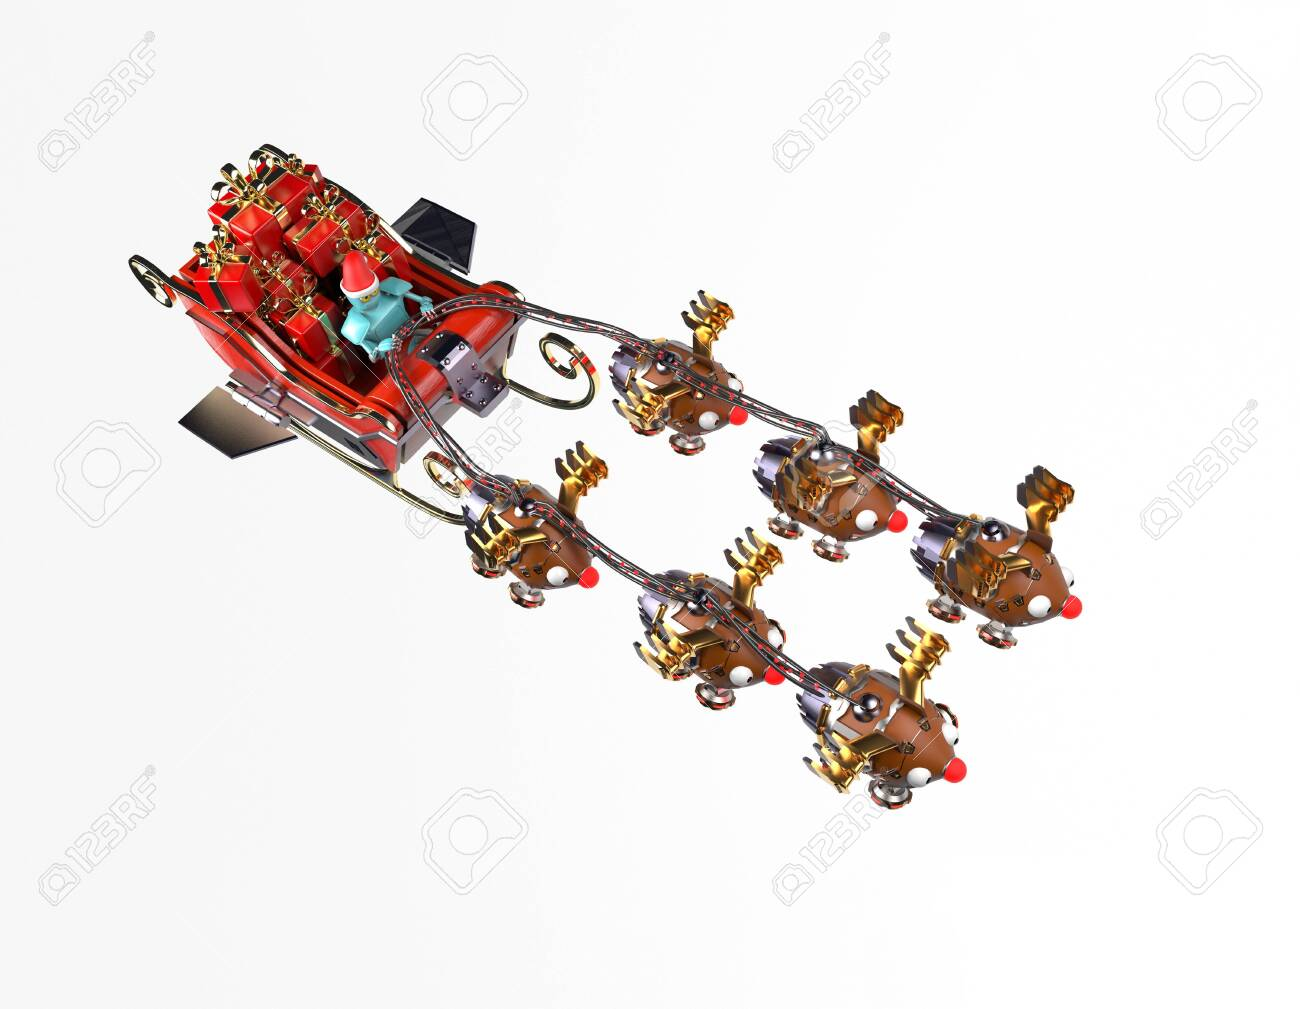 The christmas sleigh with six deer robots.3d render. - 137047417